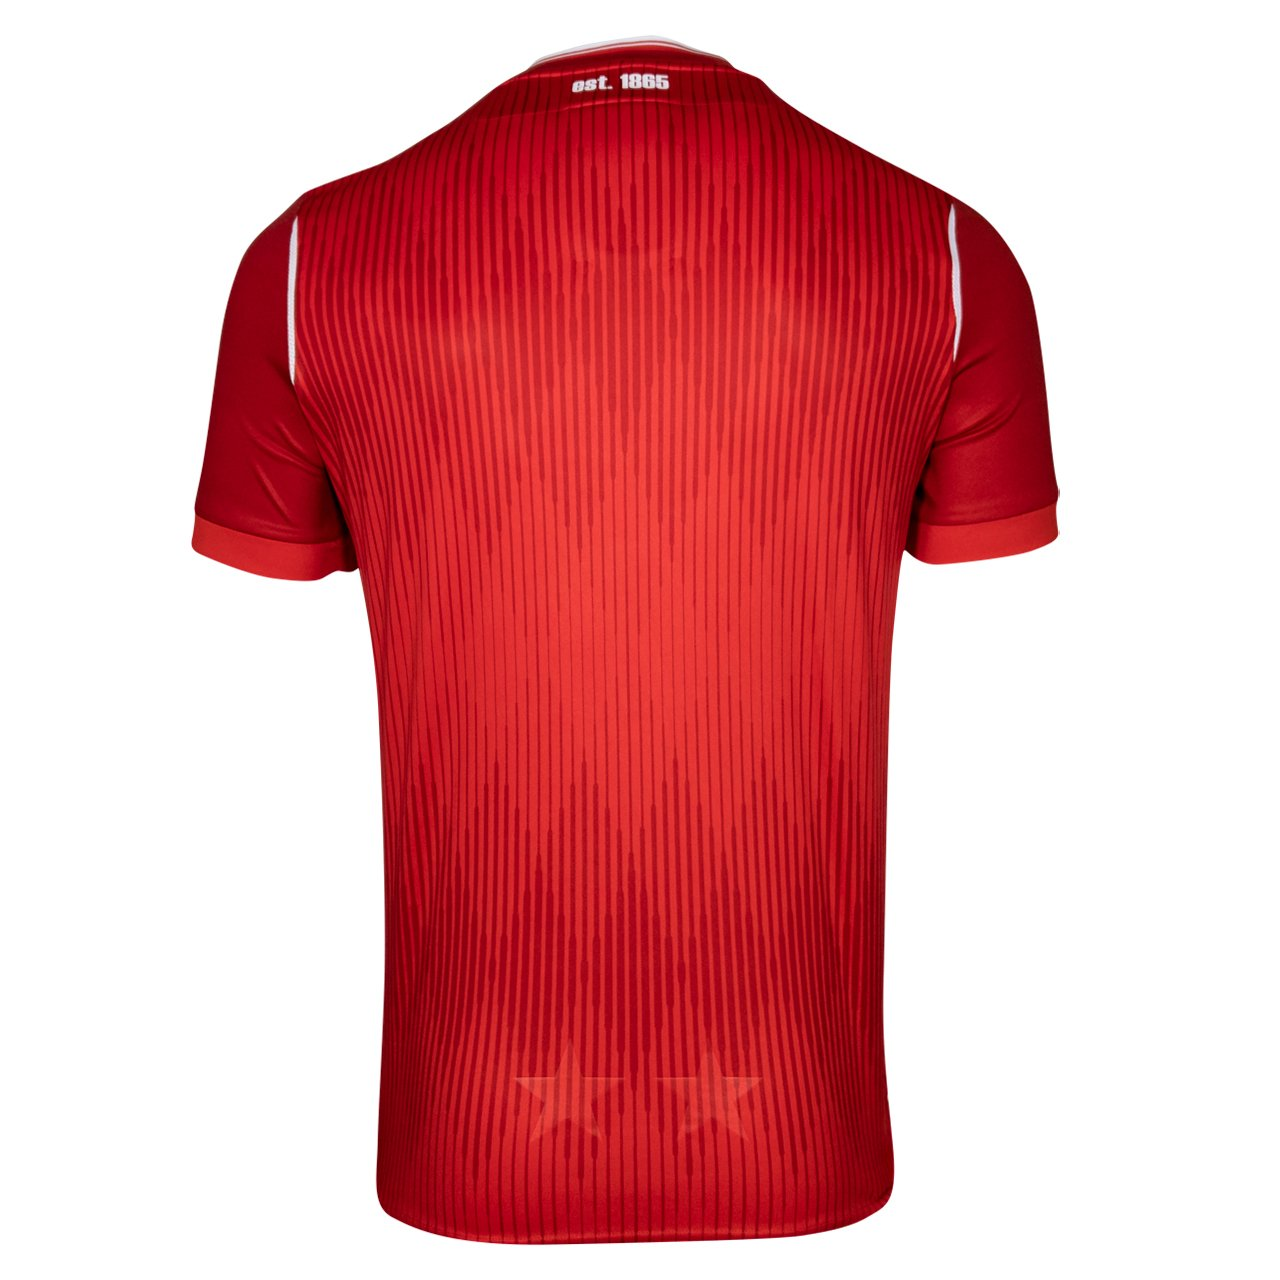 NFFC Mens Home Shirt 2019/20 (No Sponsor)